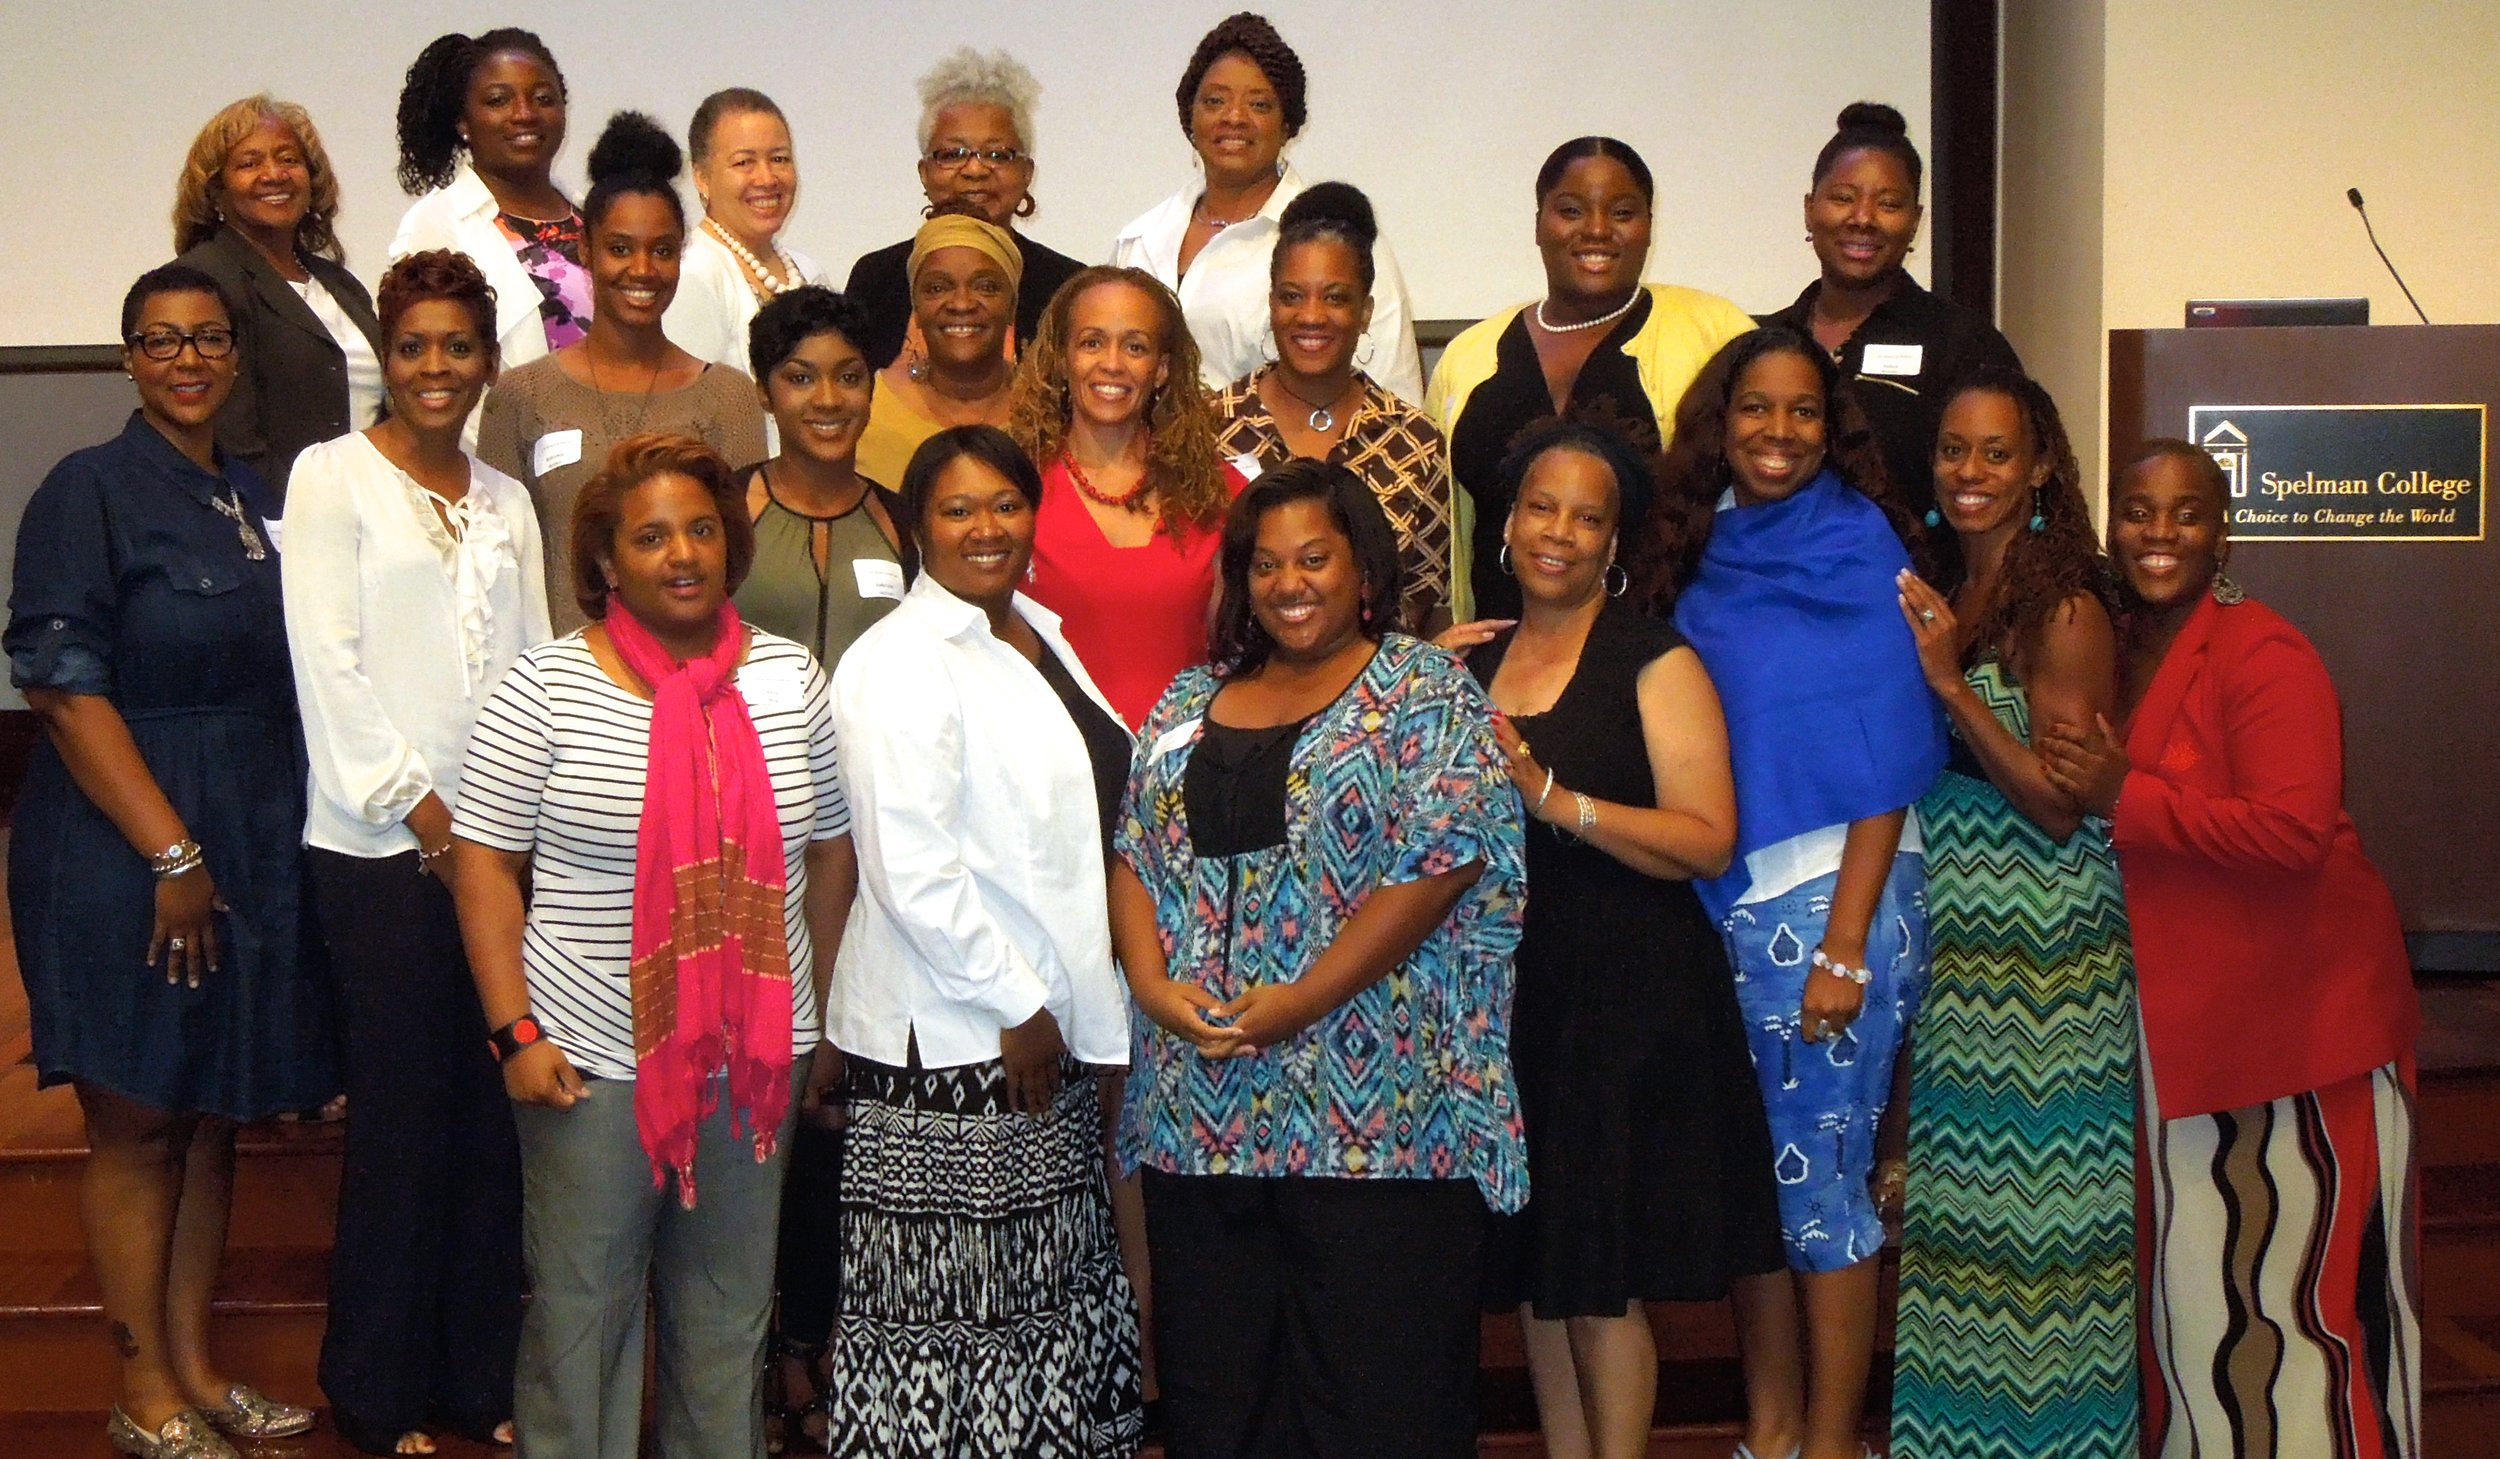 Black Women's Life Balance and Wellness conference, Sept. 19, 2015.